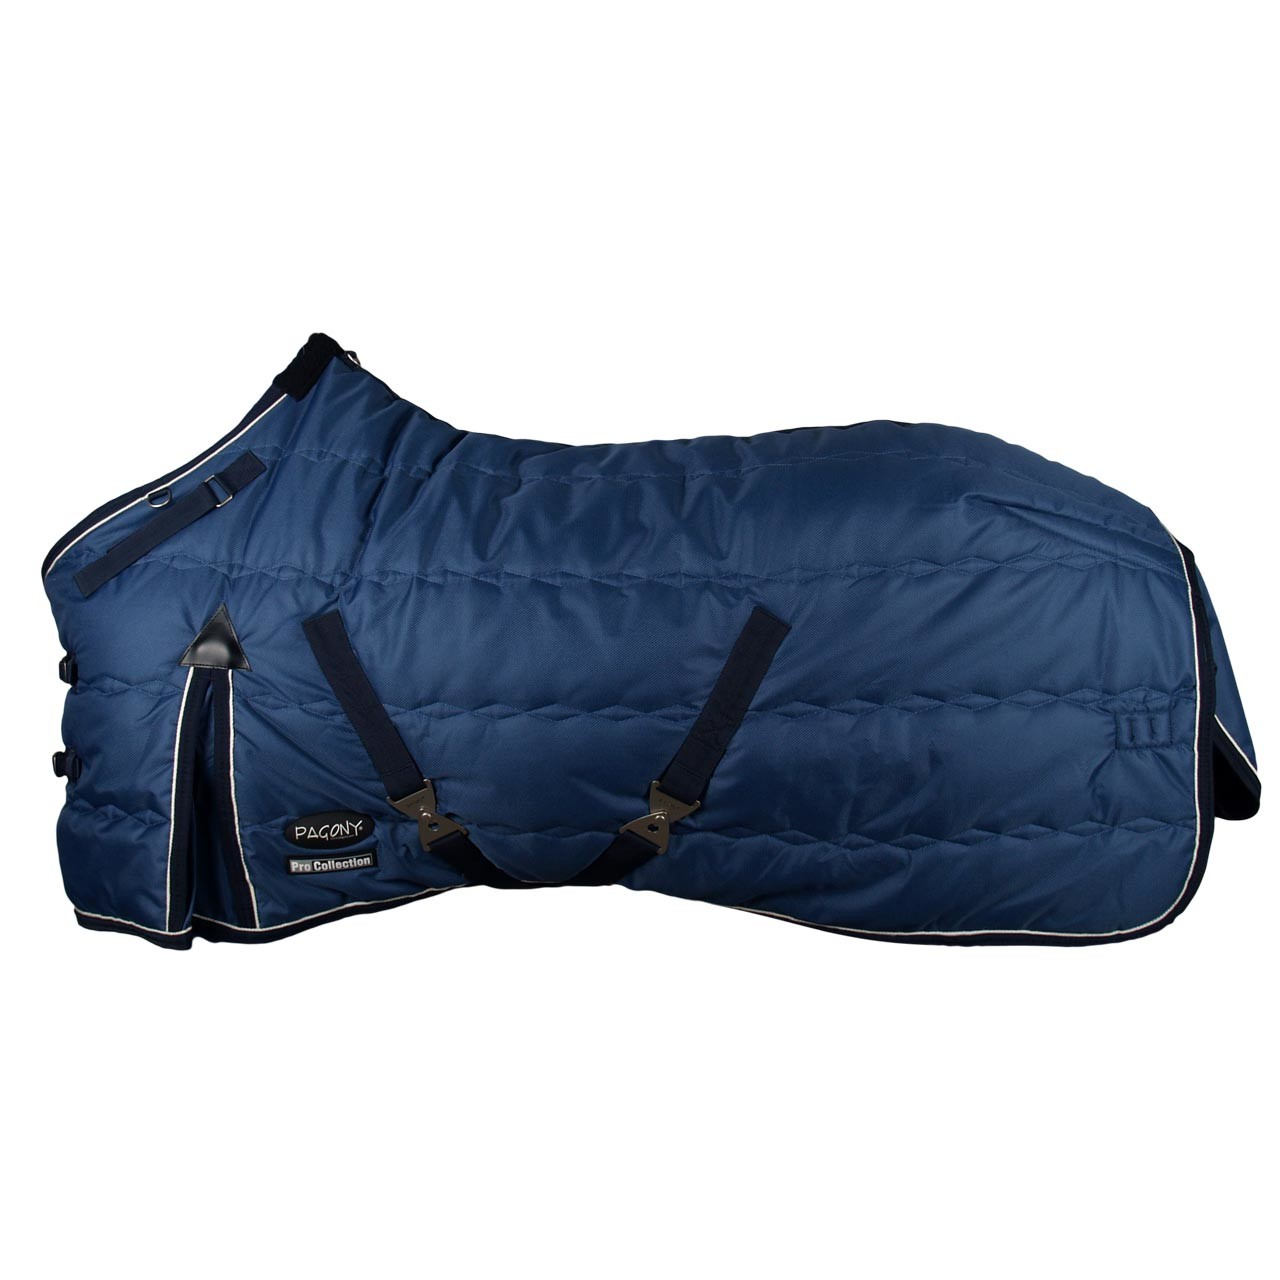 Pagony Pro stable blauw maat:185